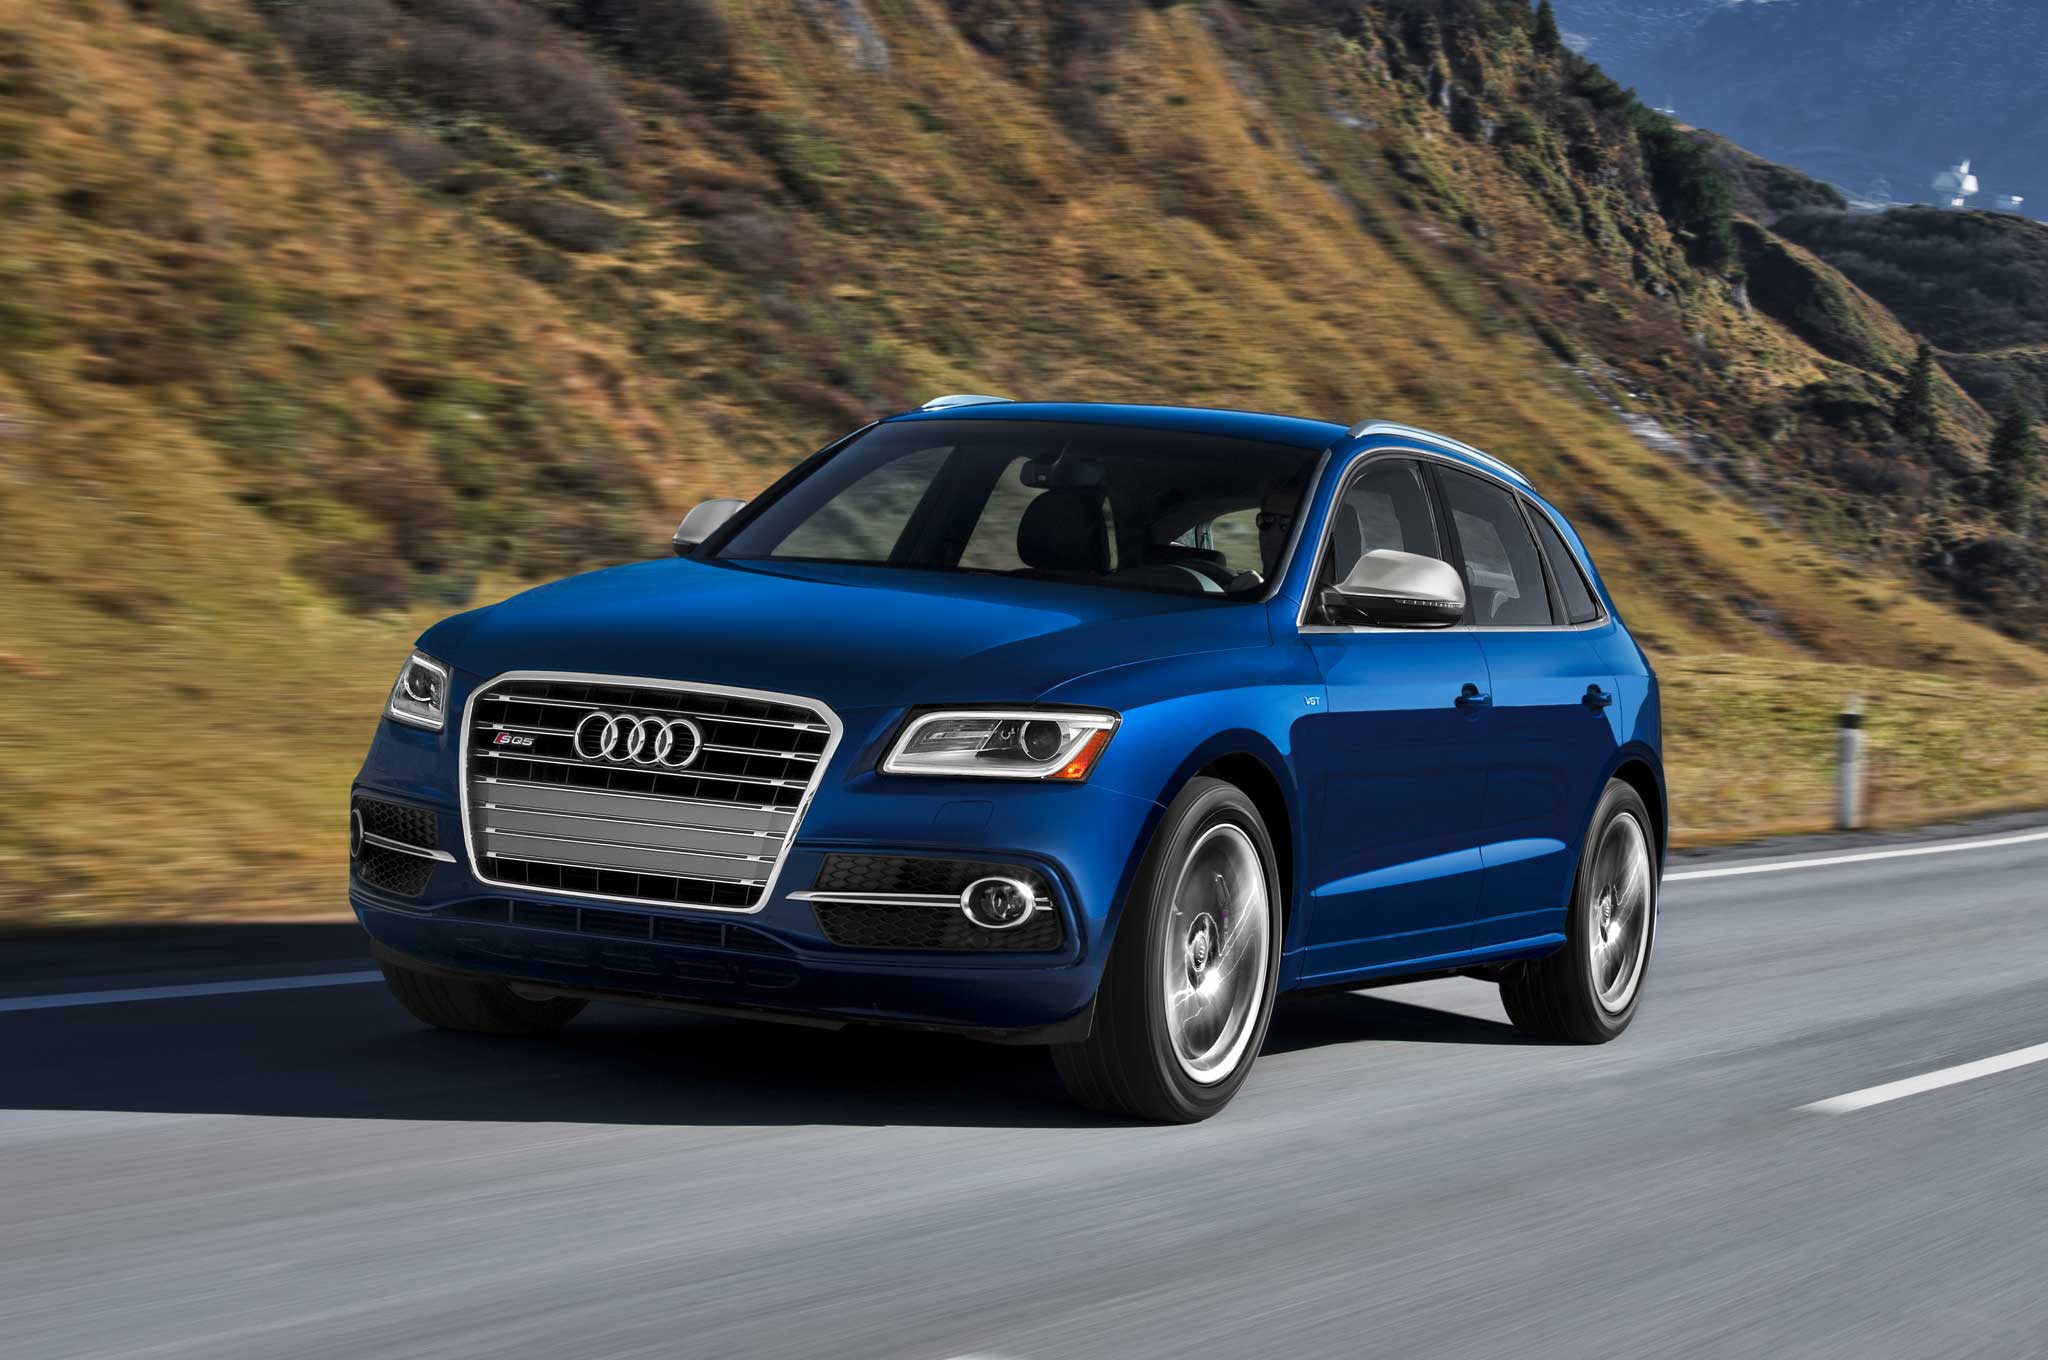 2014 Audi SQ5 Front Three Quarter Motion1